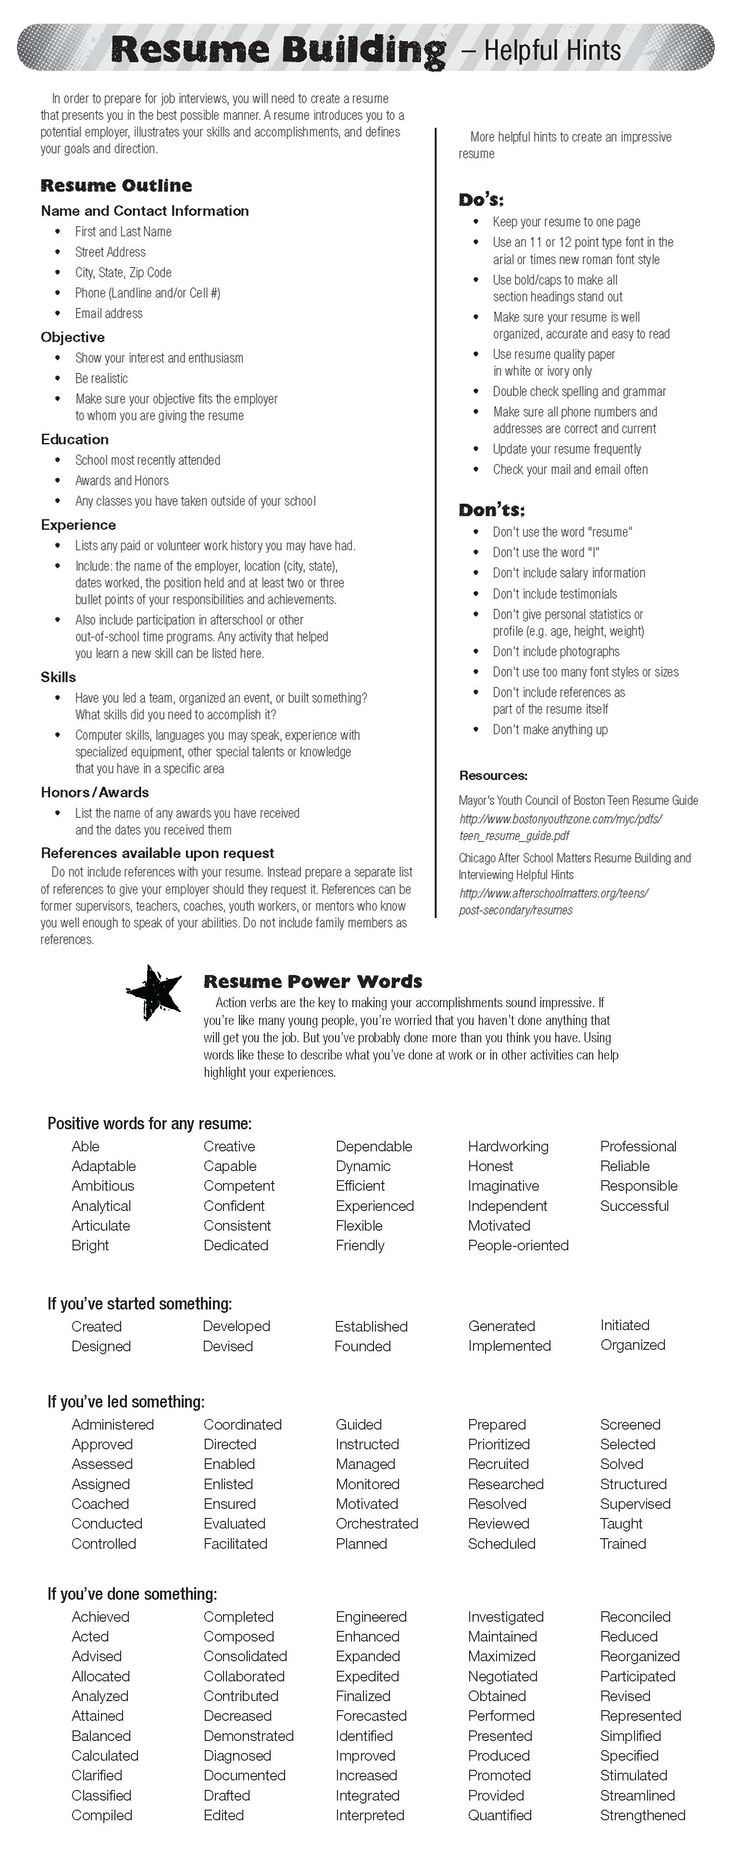 Opposenewapstandardsus  Scenic  Ideas About Resume On Pinterest  Cv Format Resume Cv And  With Fetching  Ideas About Resume On Pinterest  Cv Format Resume Cv And Resume Templates With Awesome How To Make A Quick Resume Also Account Payable Resume In Addition Product Manager Resume Sample And Extra Curricular Activities For Resume As Well As Human Resource Generalist Resume Additionally Resume Site From Pinterestcom With Opposenewapstandardsus  Fetching  Ideas About Resume On Pinterest  Cv Format Resume Cv And  With Awesome  Ideas About Resume On Pinterest  Cv Format Resume Cv And Resume Templates And Scenic How To Make A Quick Resume Also Account Payable Resume In Addition Product Manager Resume Sample From Pinterestcom